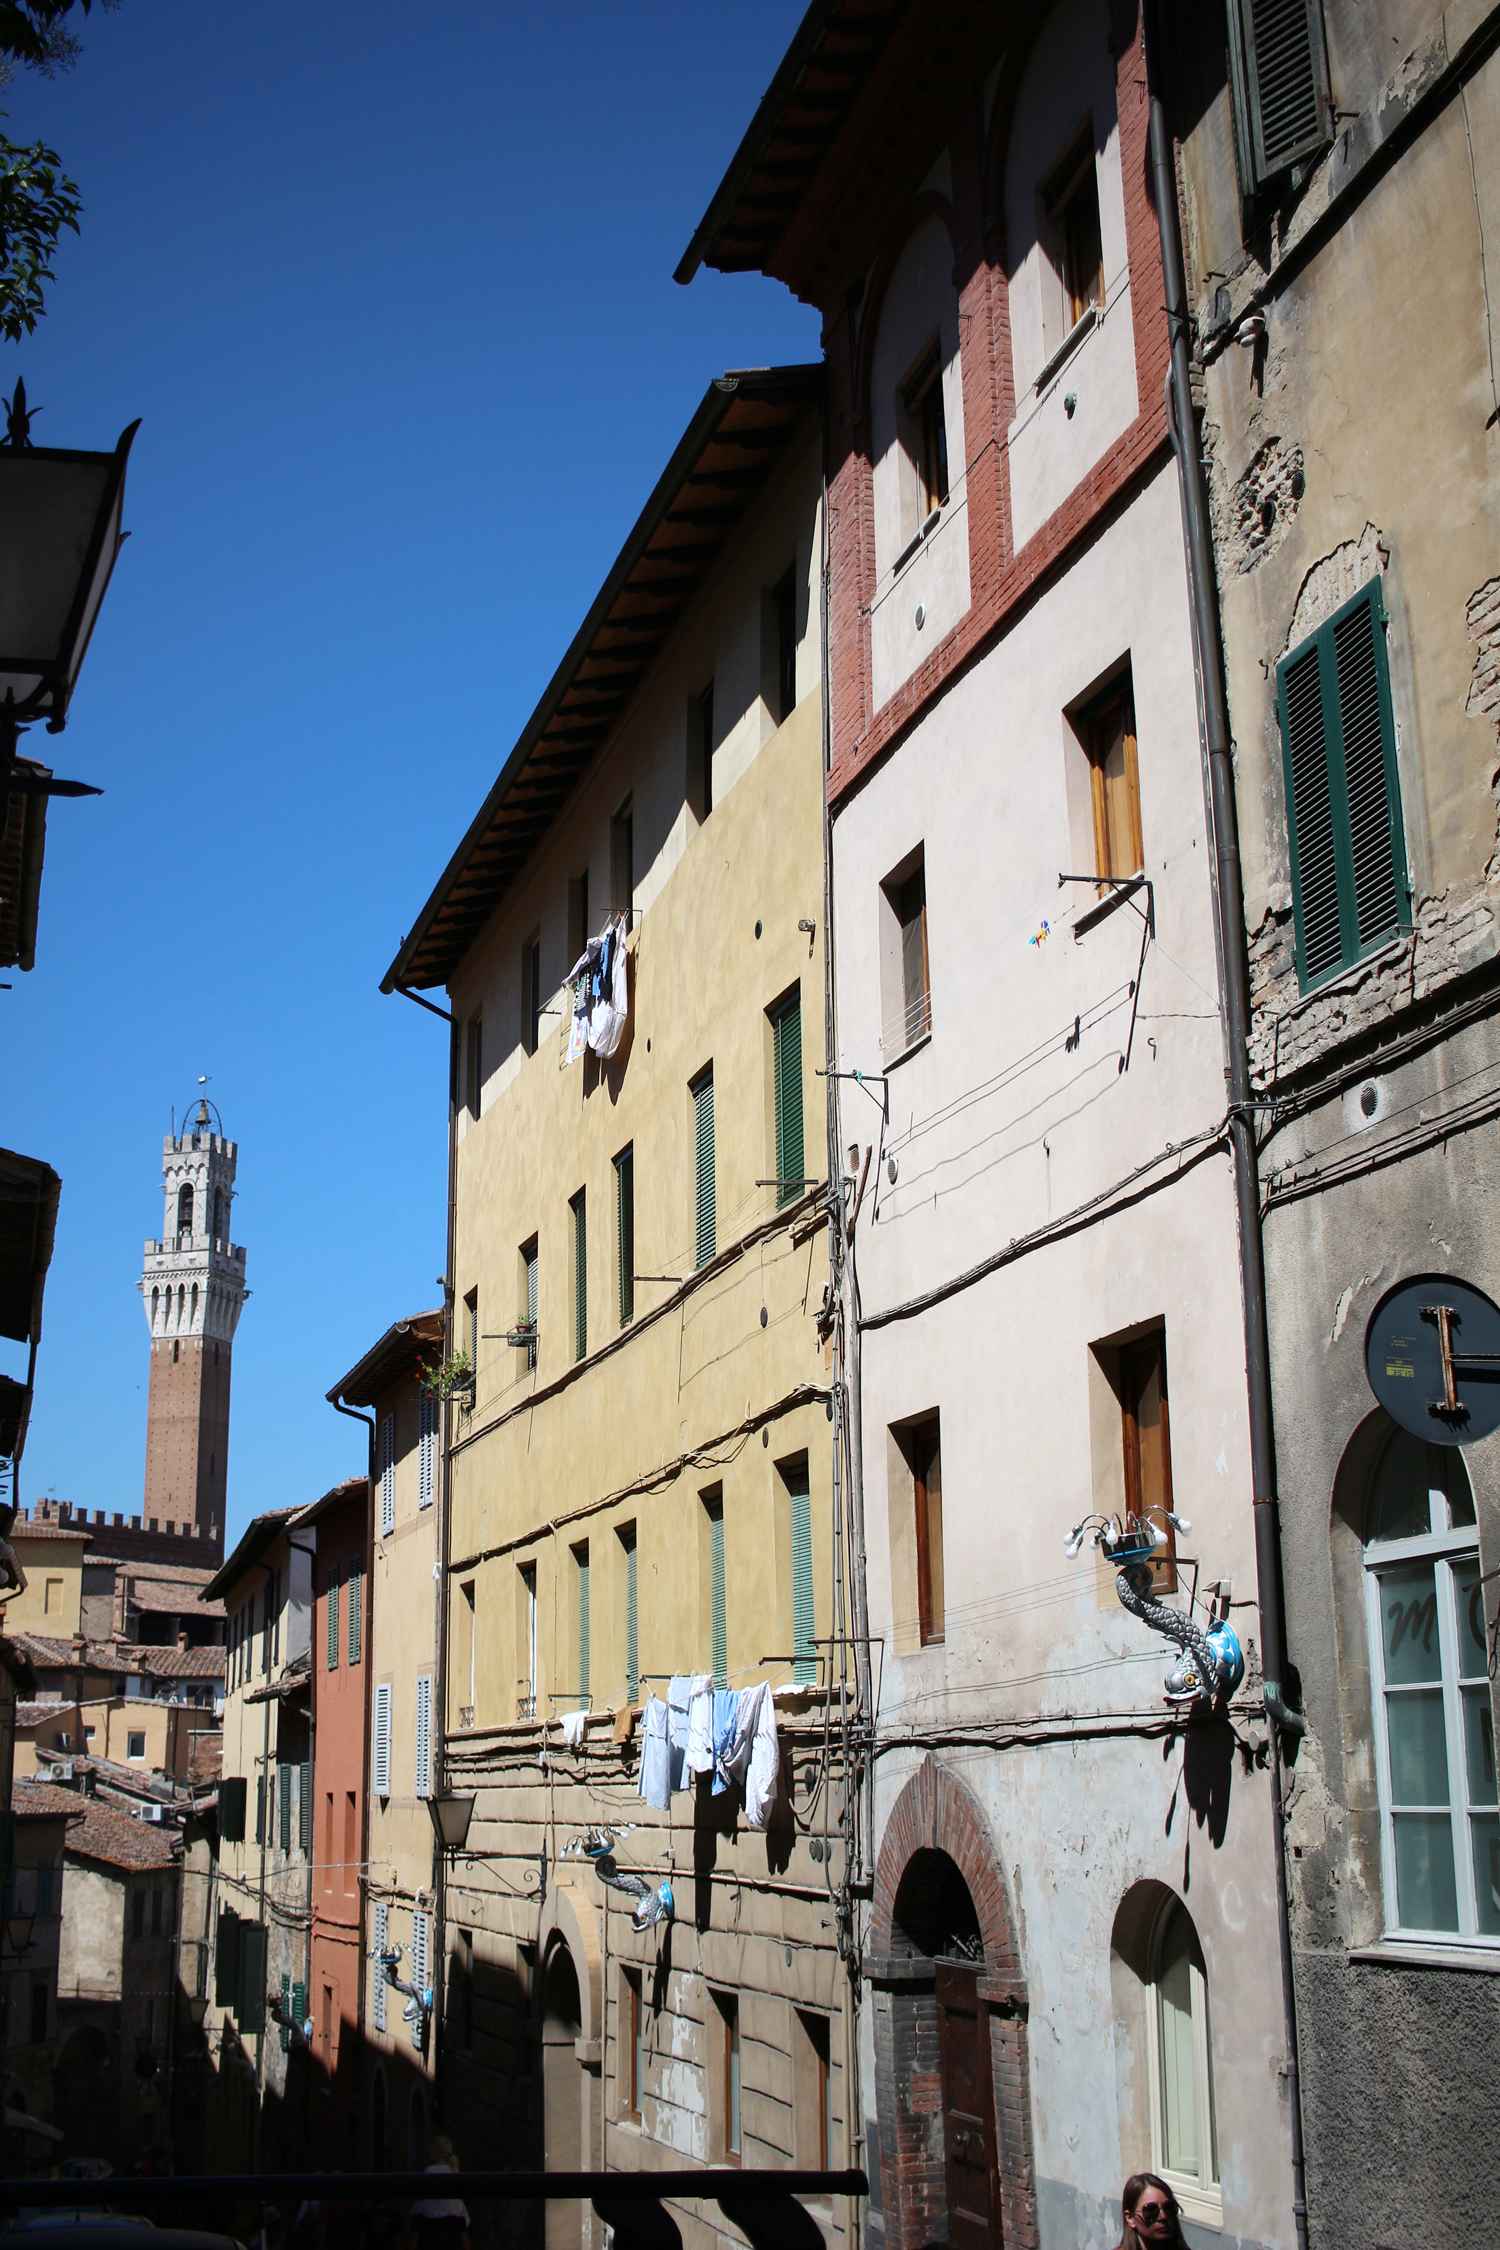 tuscany-italy-siena-travel-blogger-13